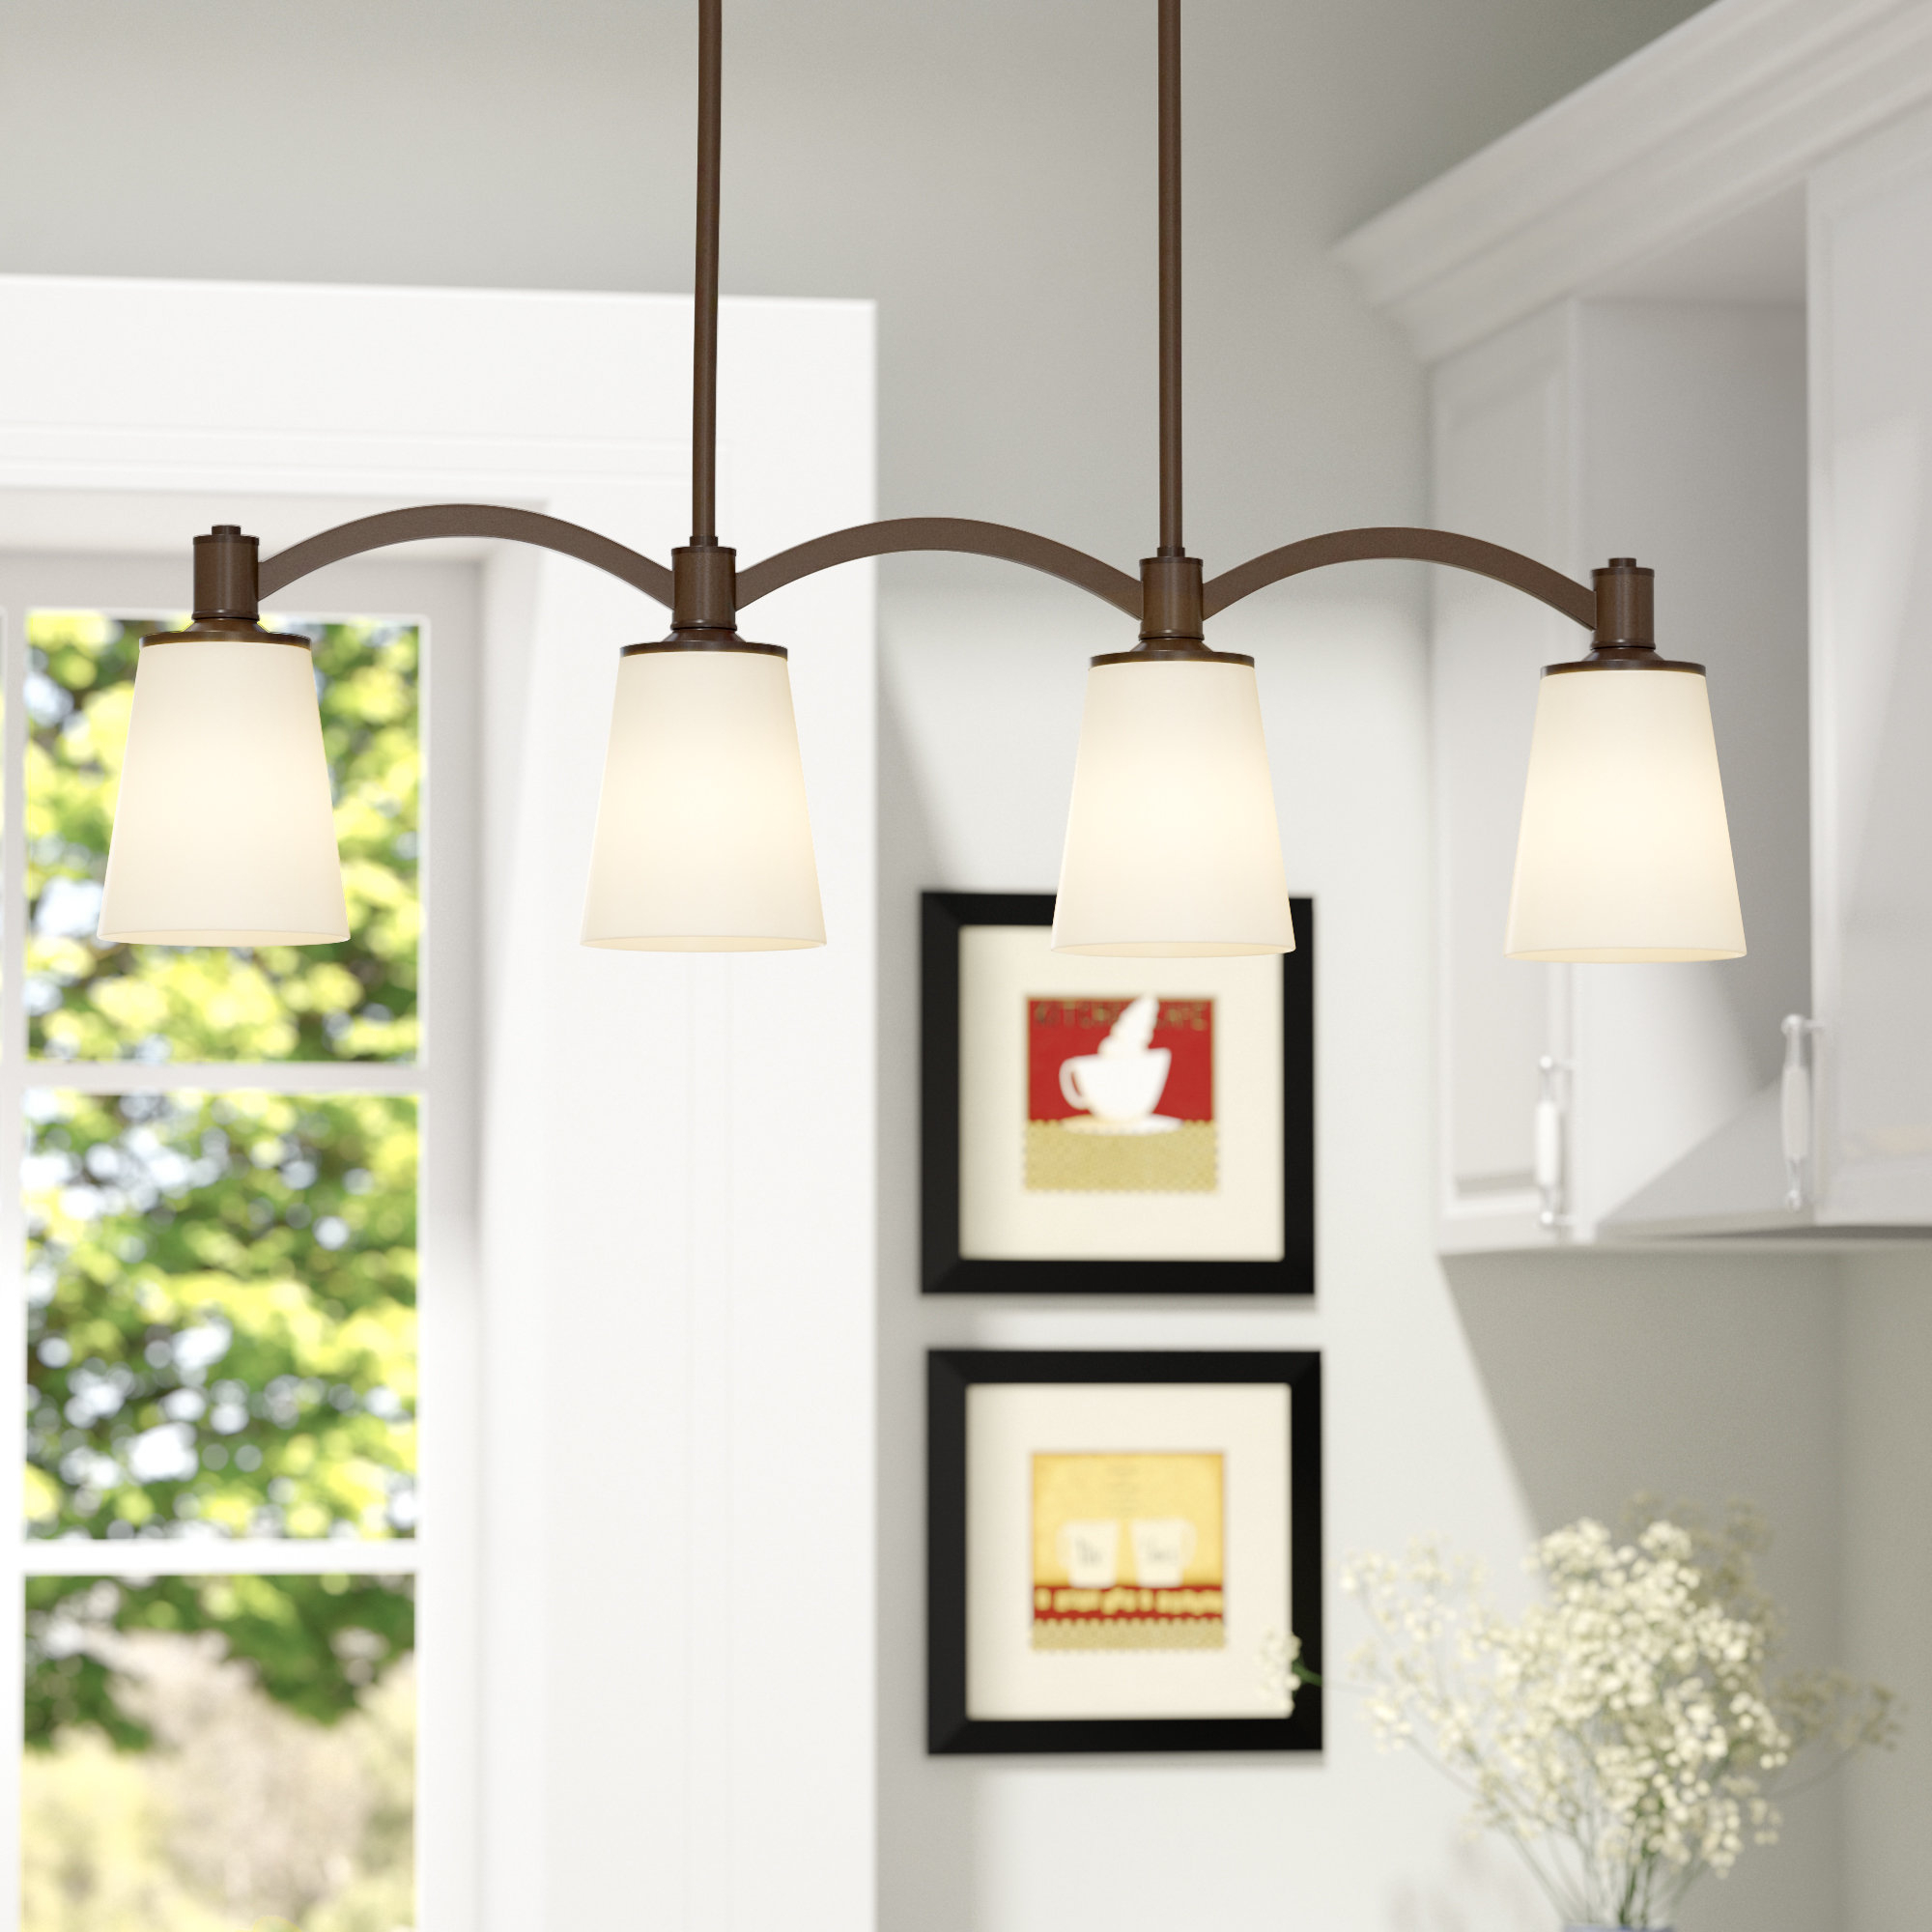 Charlton Home Pendant Lighting You'll Love In 2019 | Wayfair Throughout Rockland 4 Light Geometric Pendants (View 5 of 30)